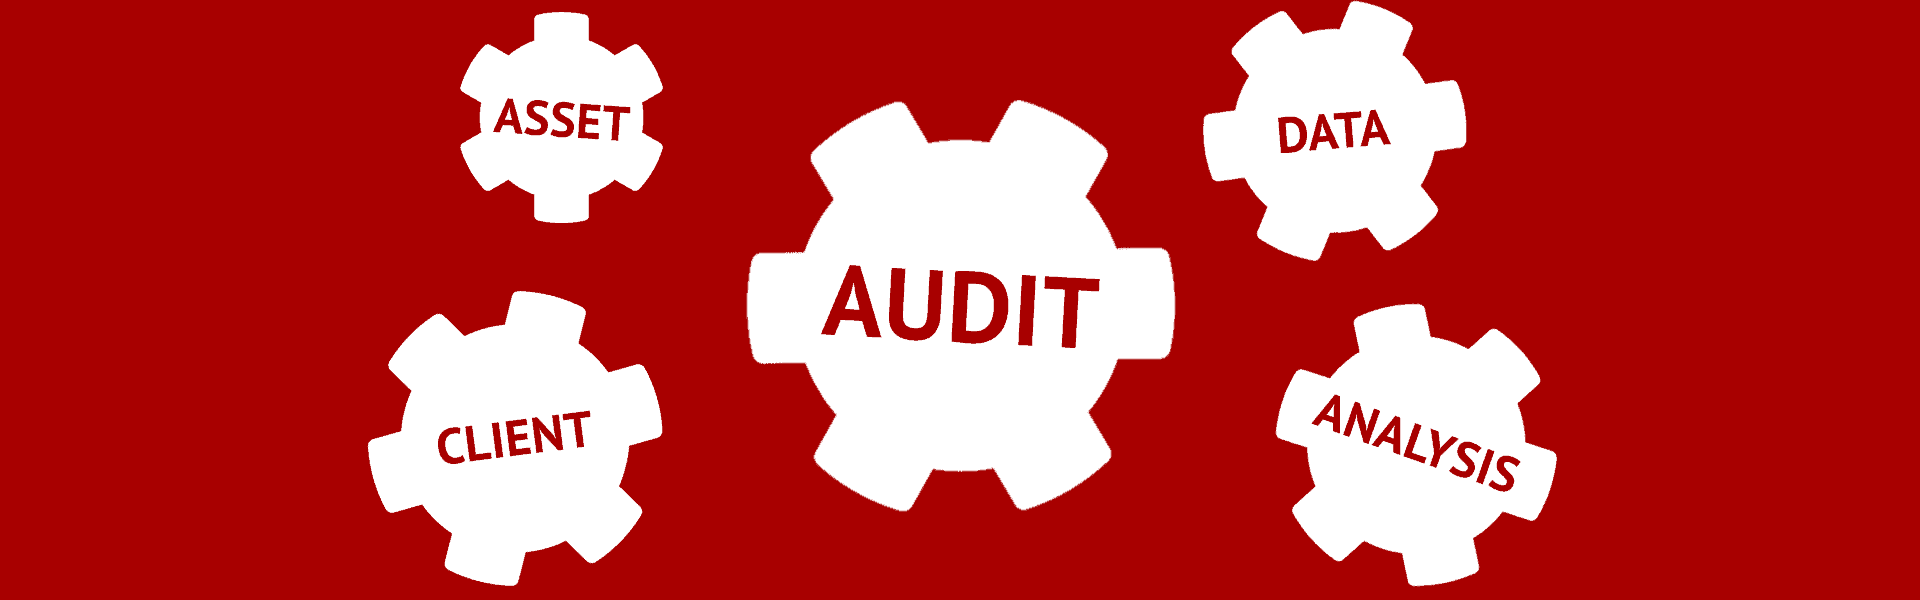 seo audit template free download - showing audit analysis data asset client in cogs